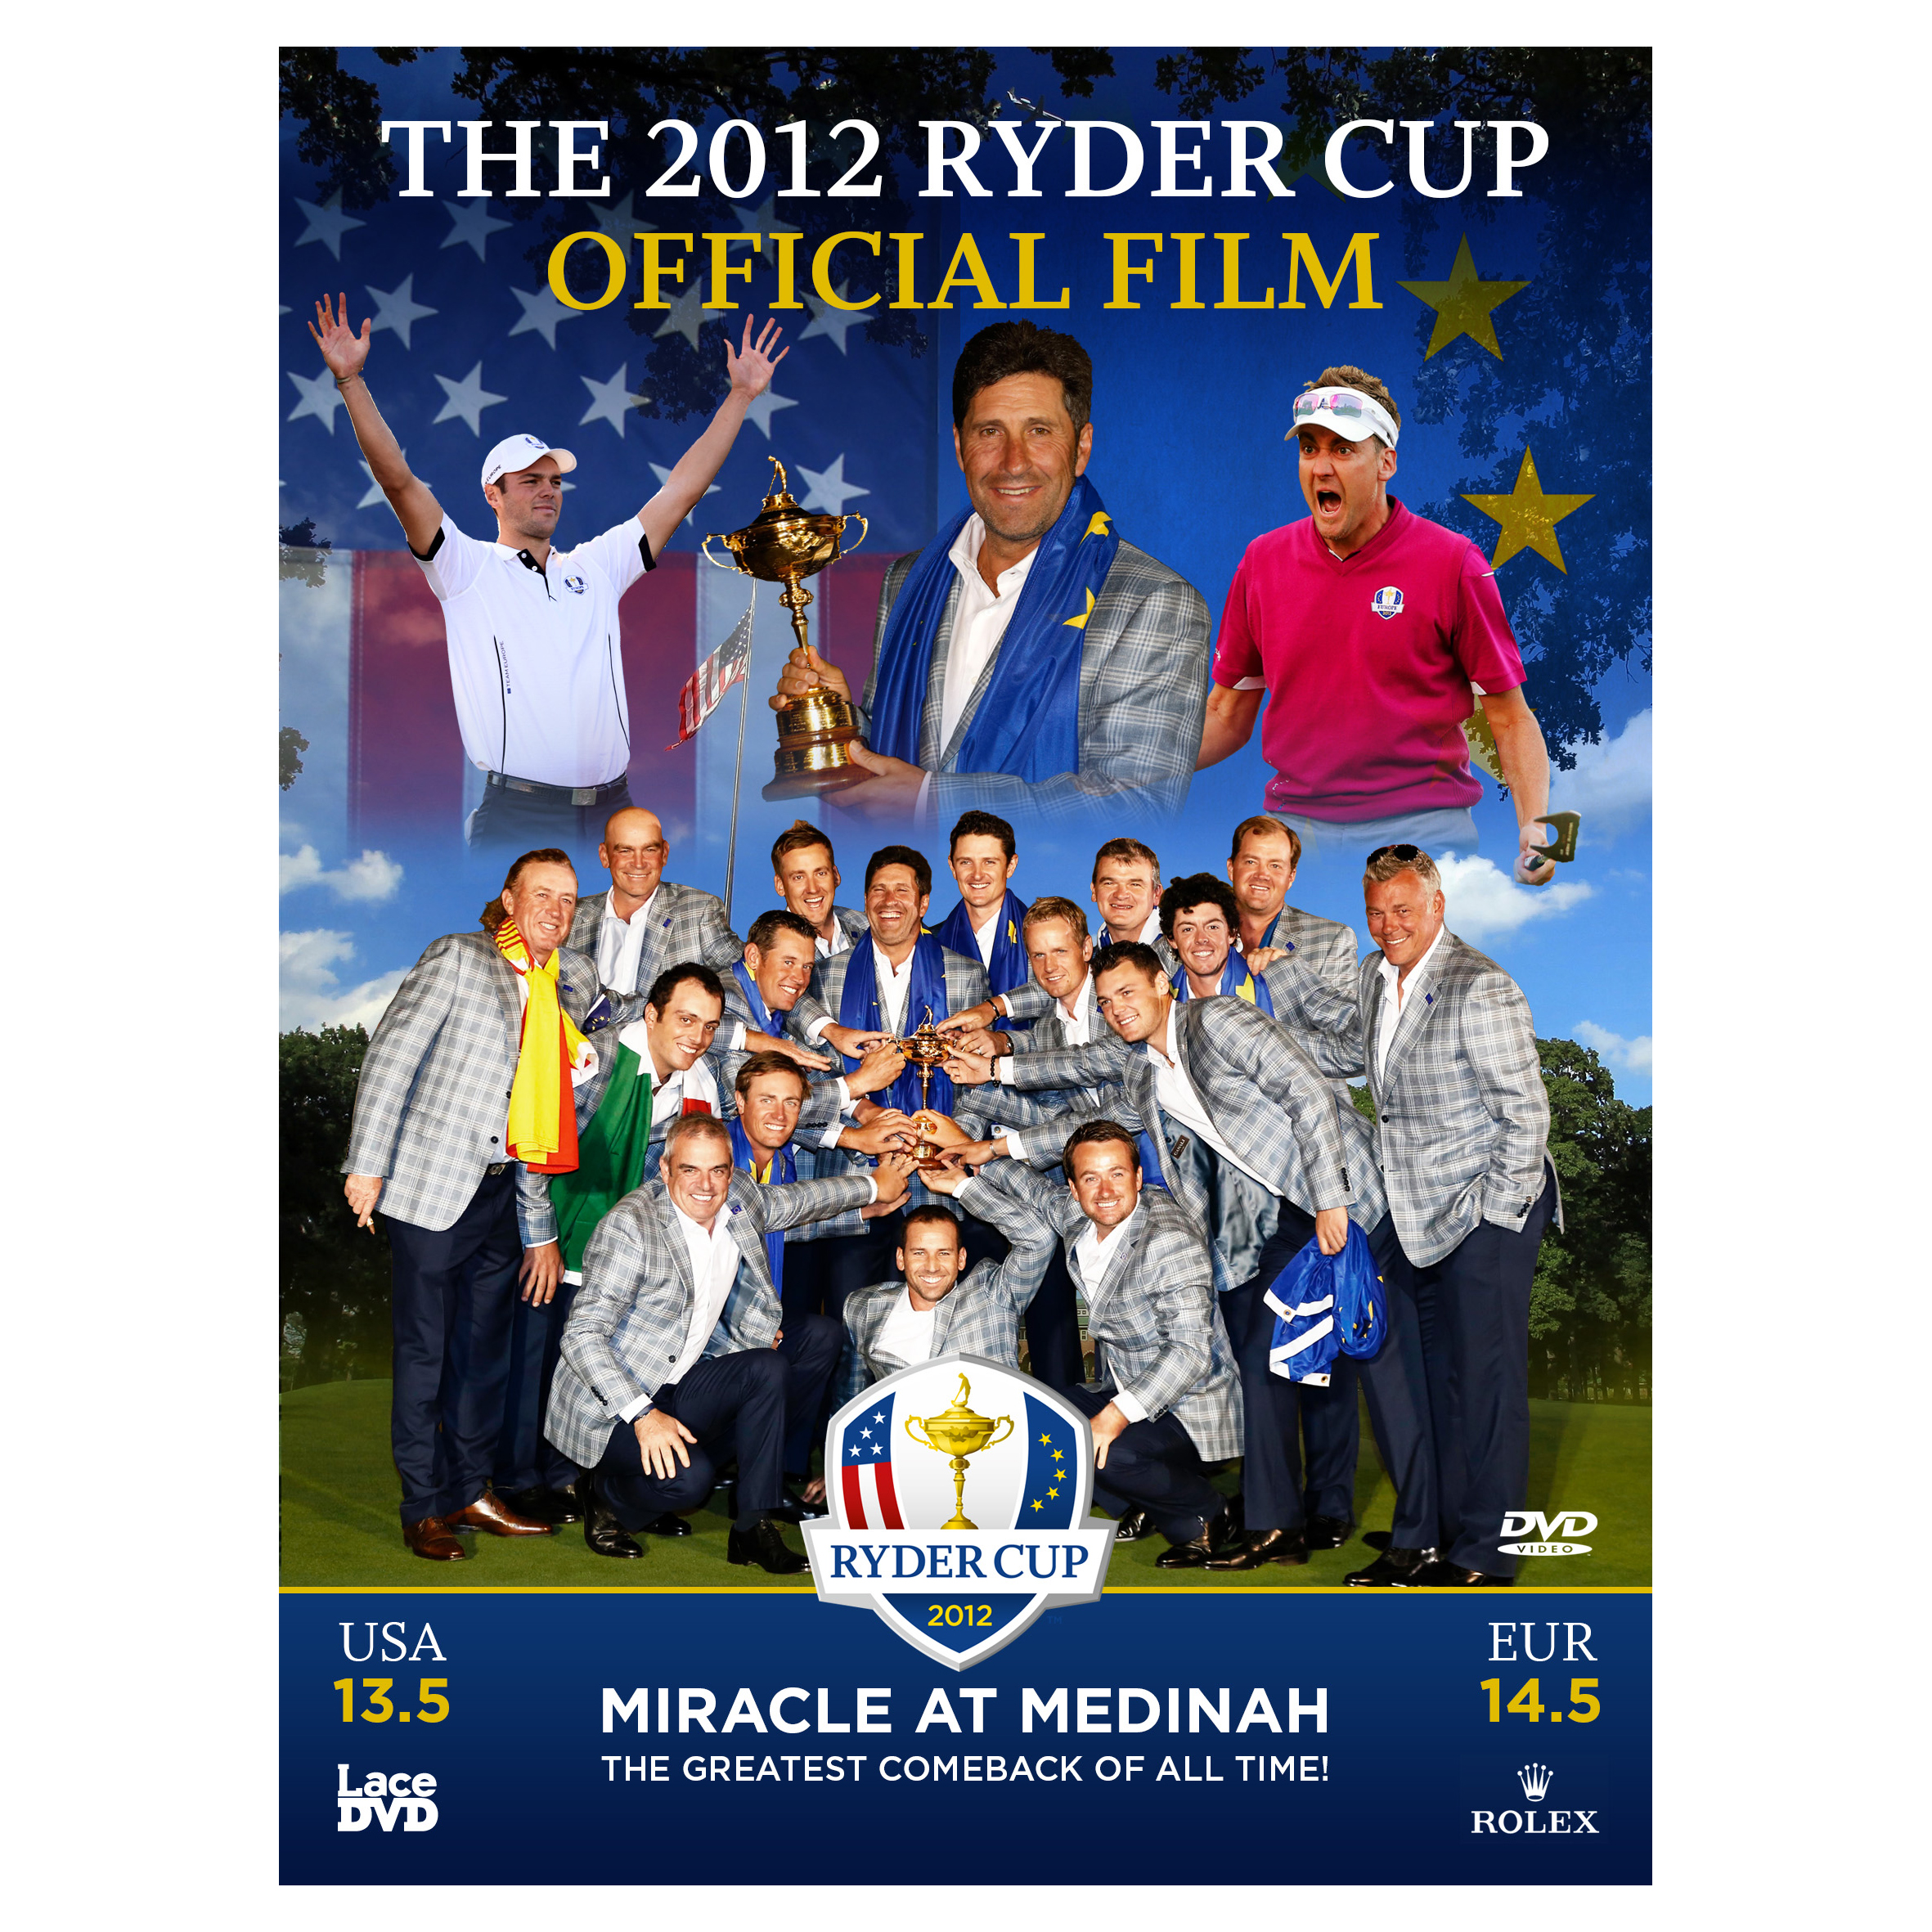 The 2012 Ryder Cup Medinah Official Film (39th) DVD